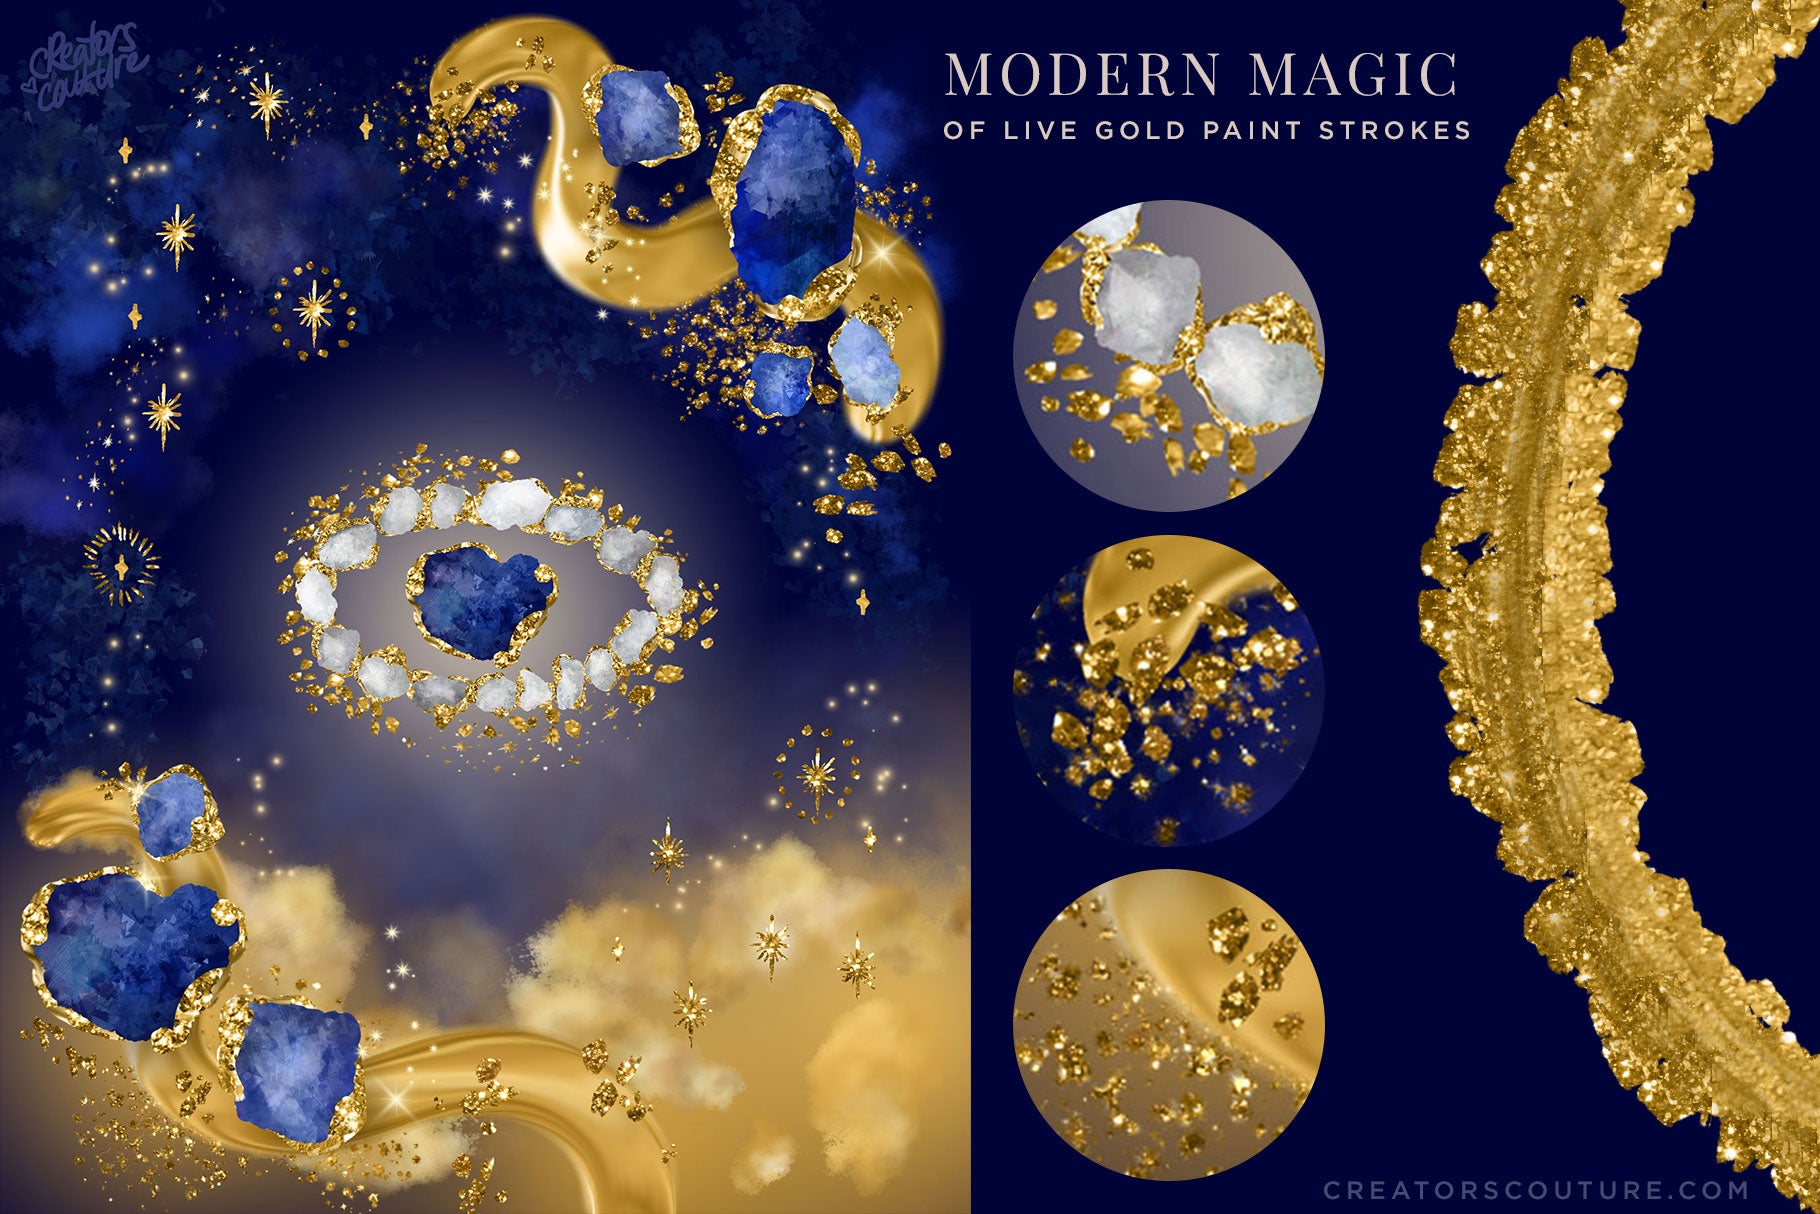 24K Gold Photoshop Brush Magic: SAMPLER Pack - Creators Couture